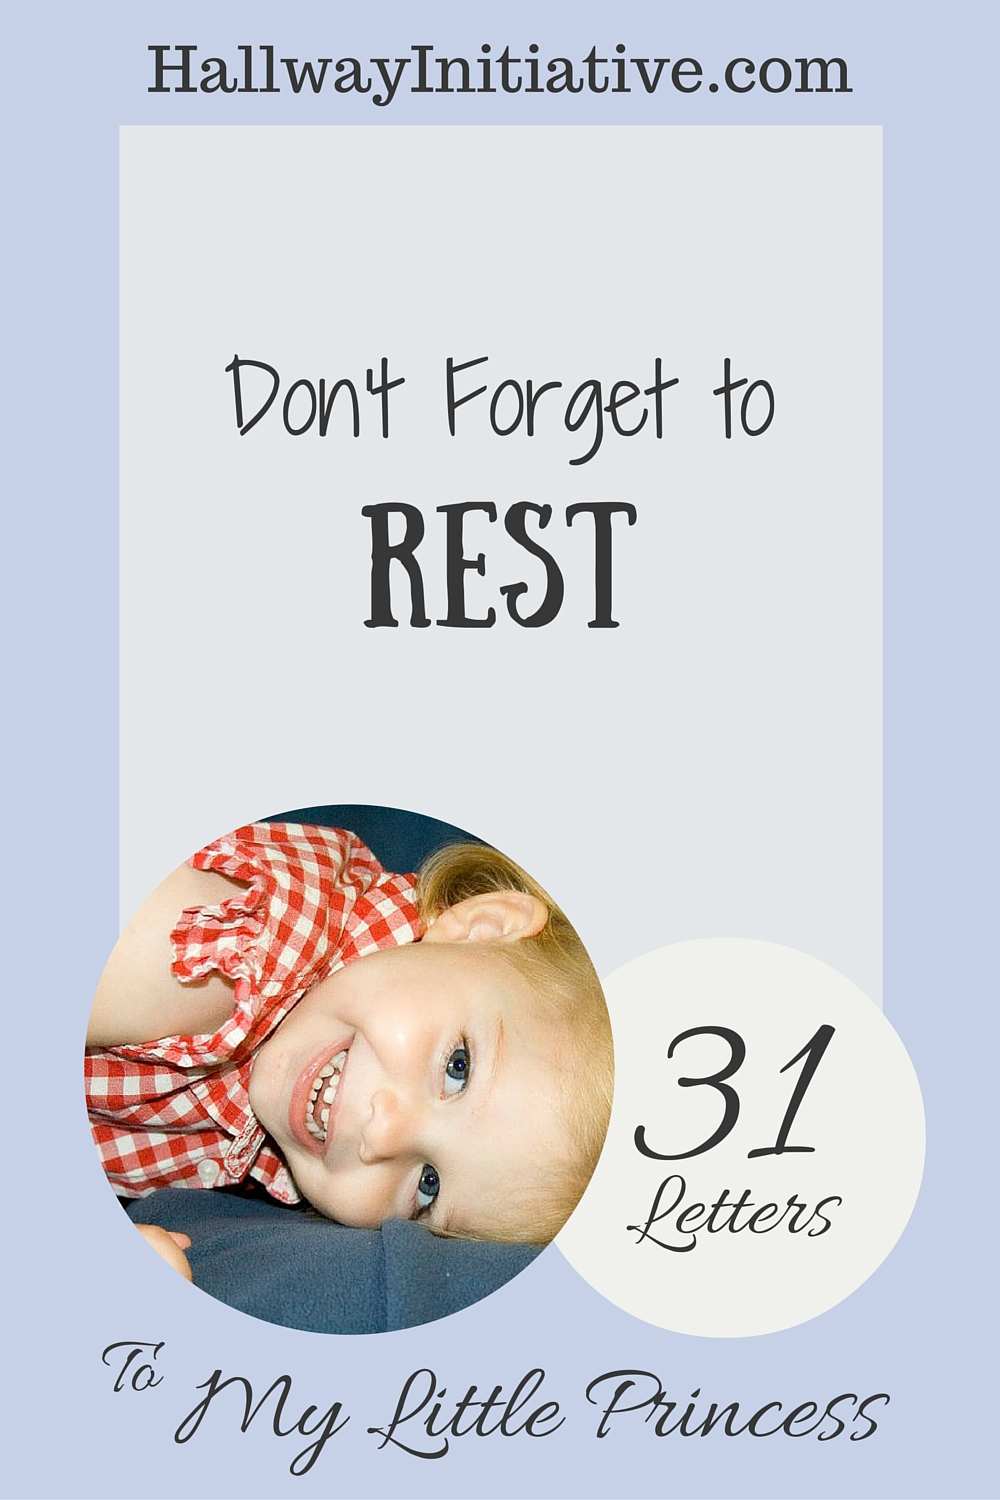 Don't forget to rest